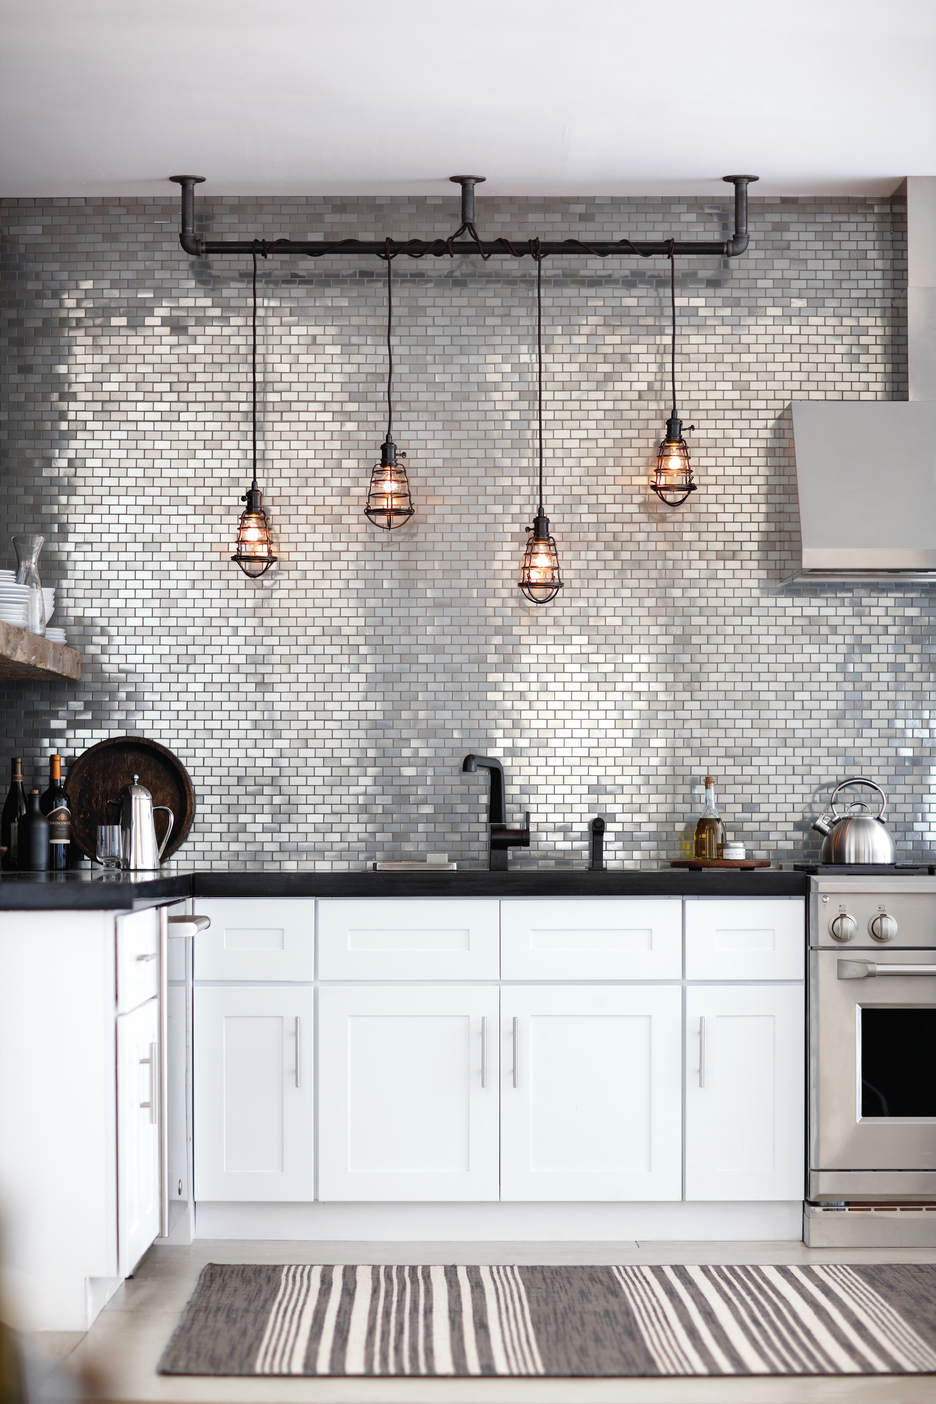 Backsplash Glimmer